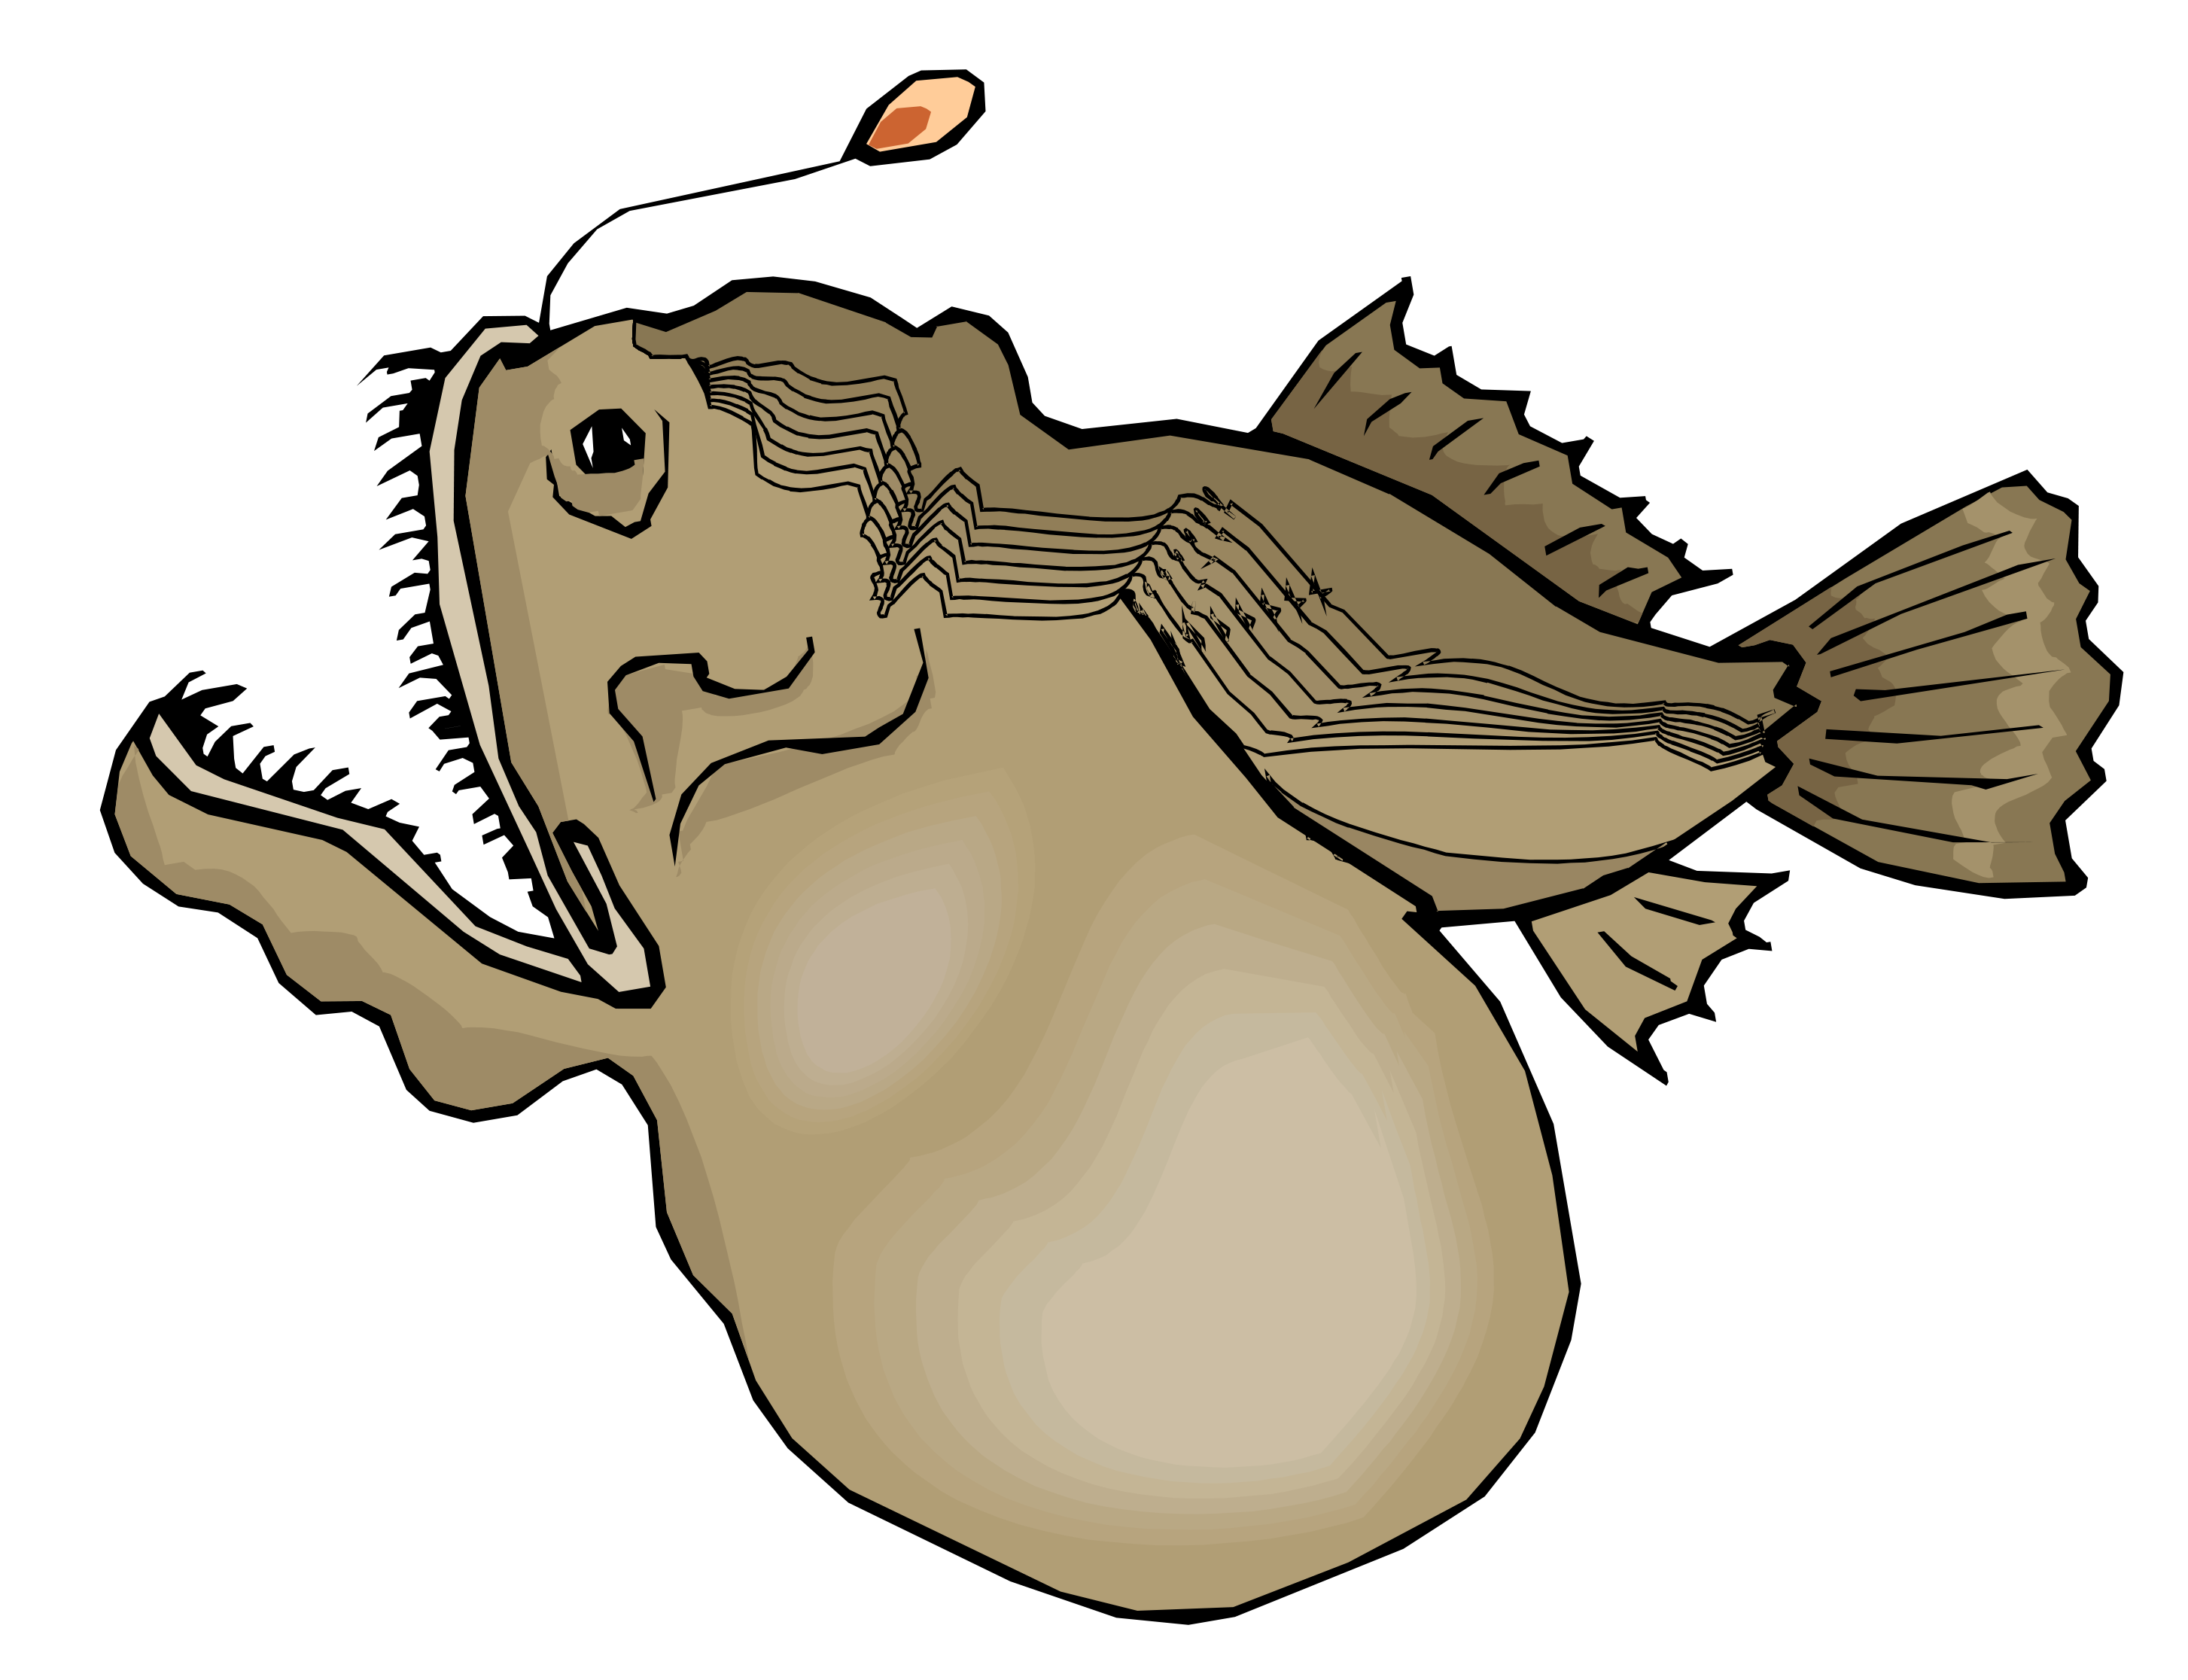 Fish died clipart clip art transparent library General Perspective - Submerge in the Word - Children are Important clip art transparent library